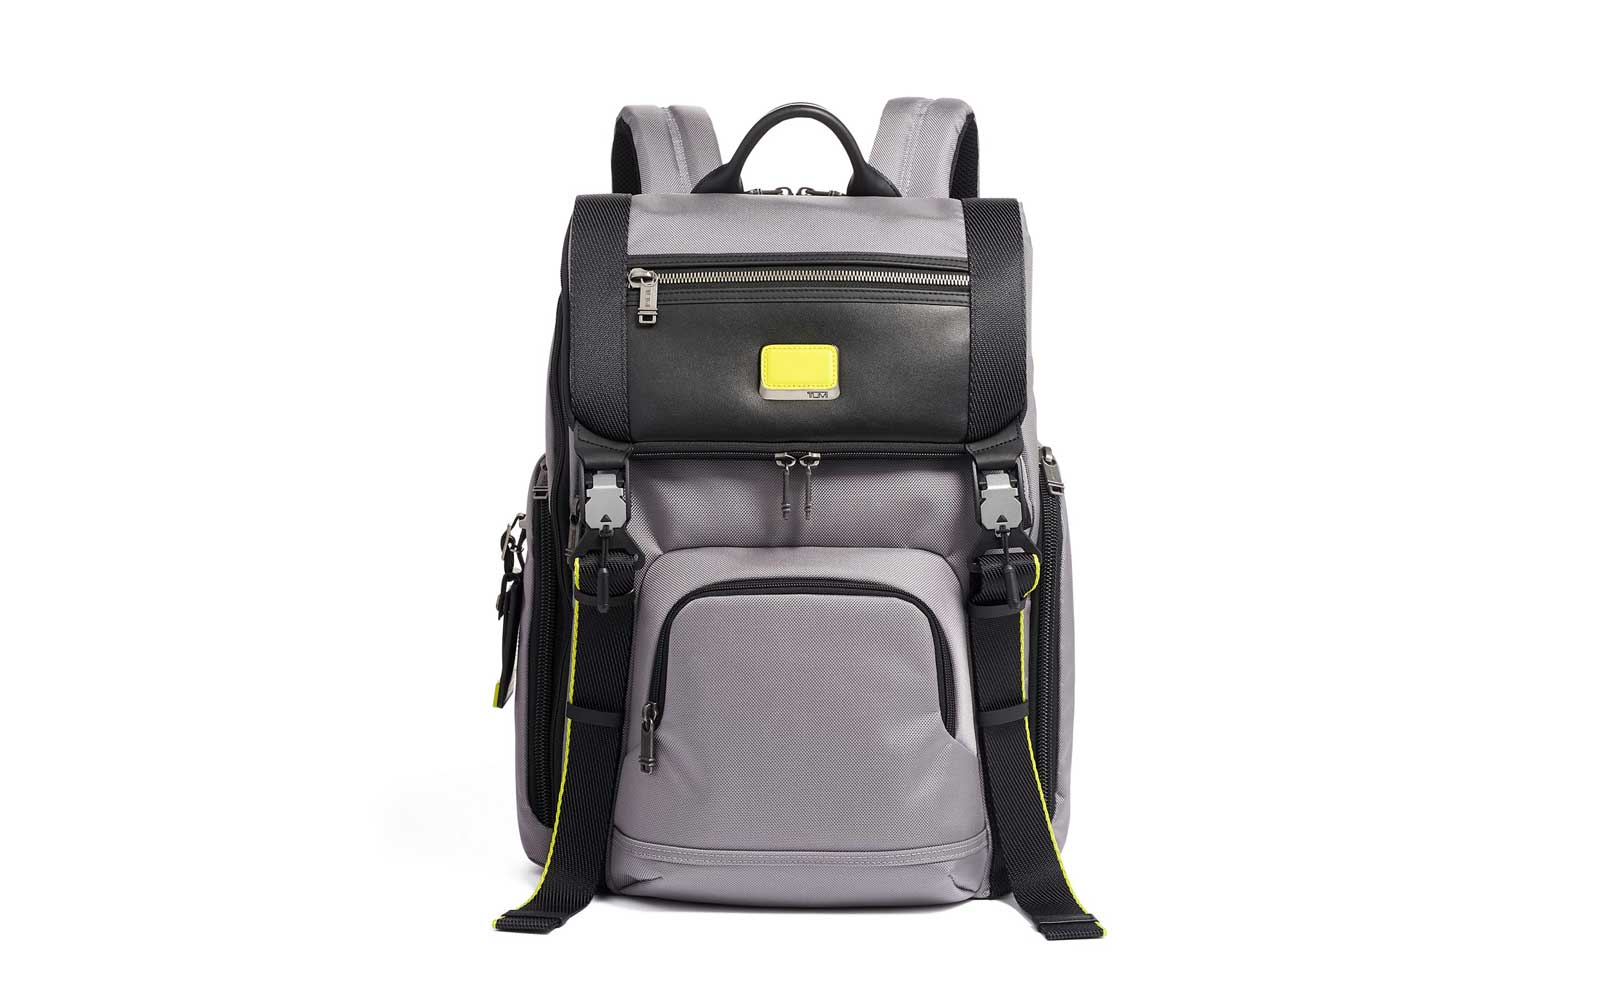 Black and Grey Laptop Backpack with Leather